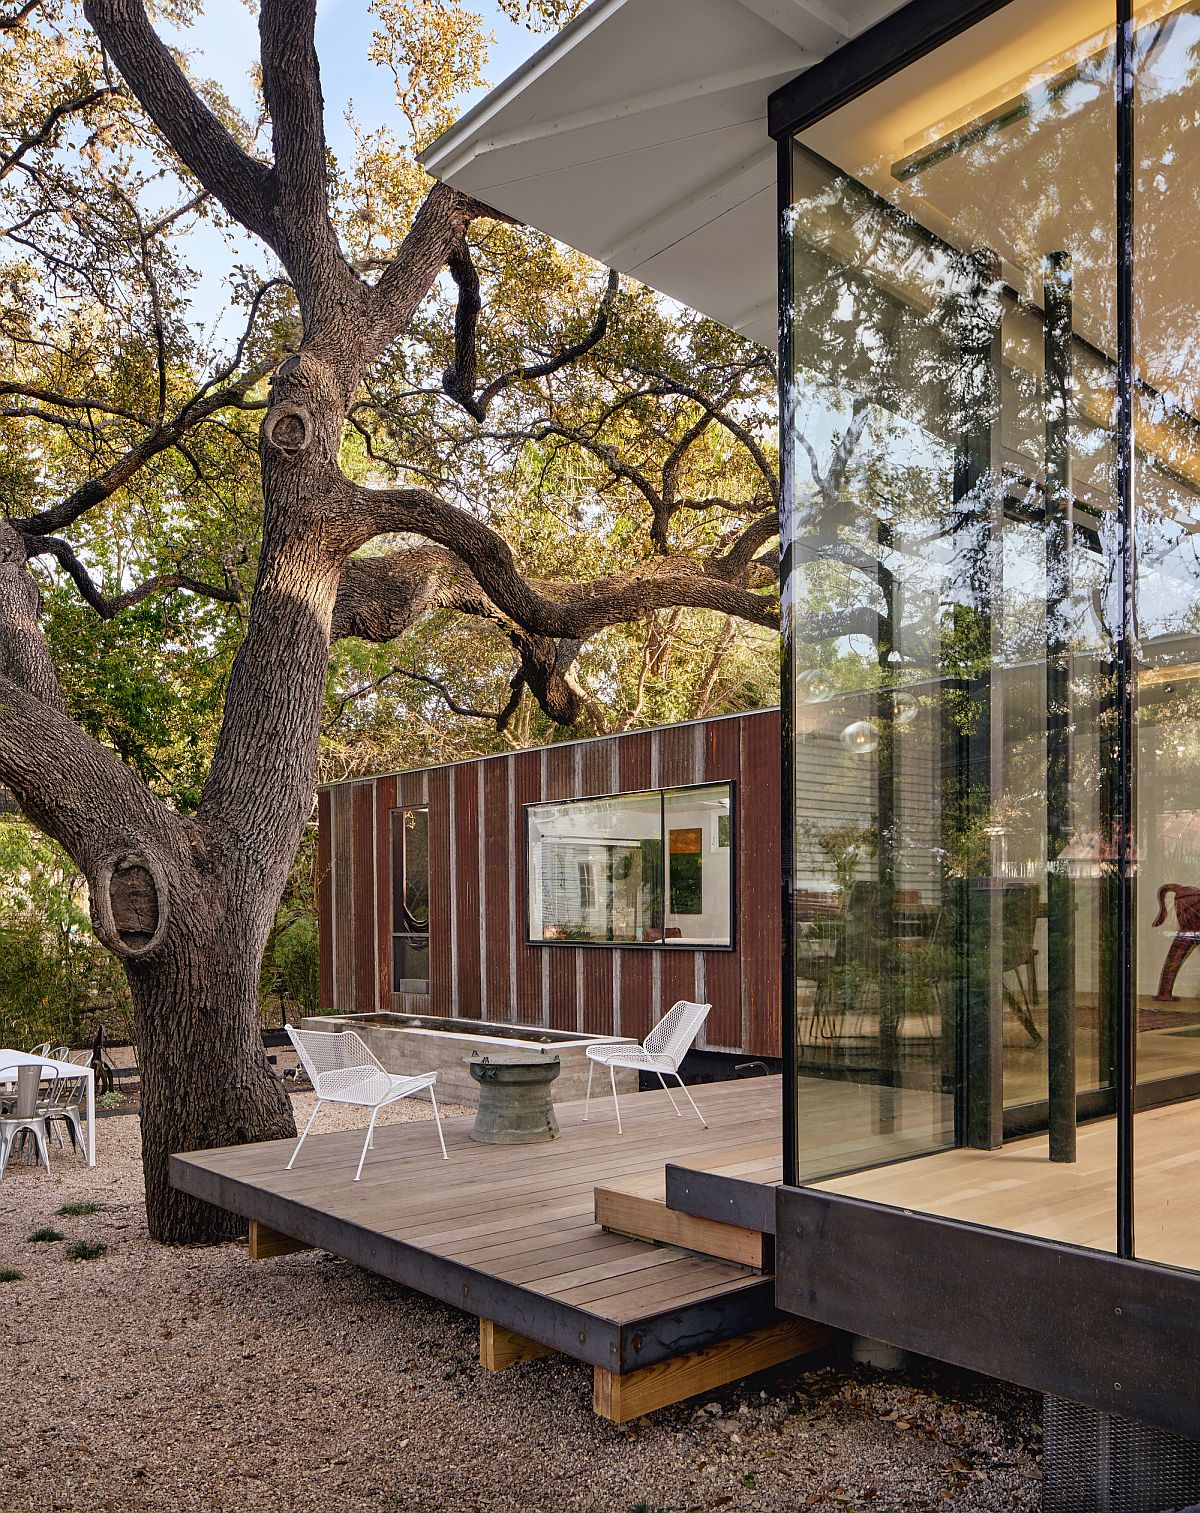 Glass walls connect the cottage with the outdoor terrace and green surroudings